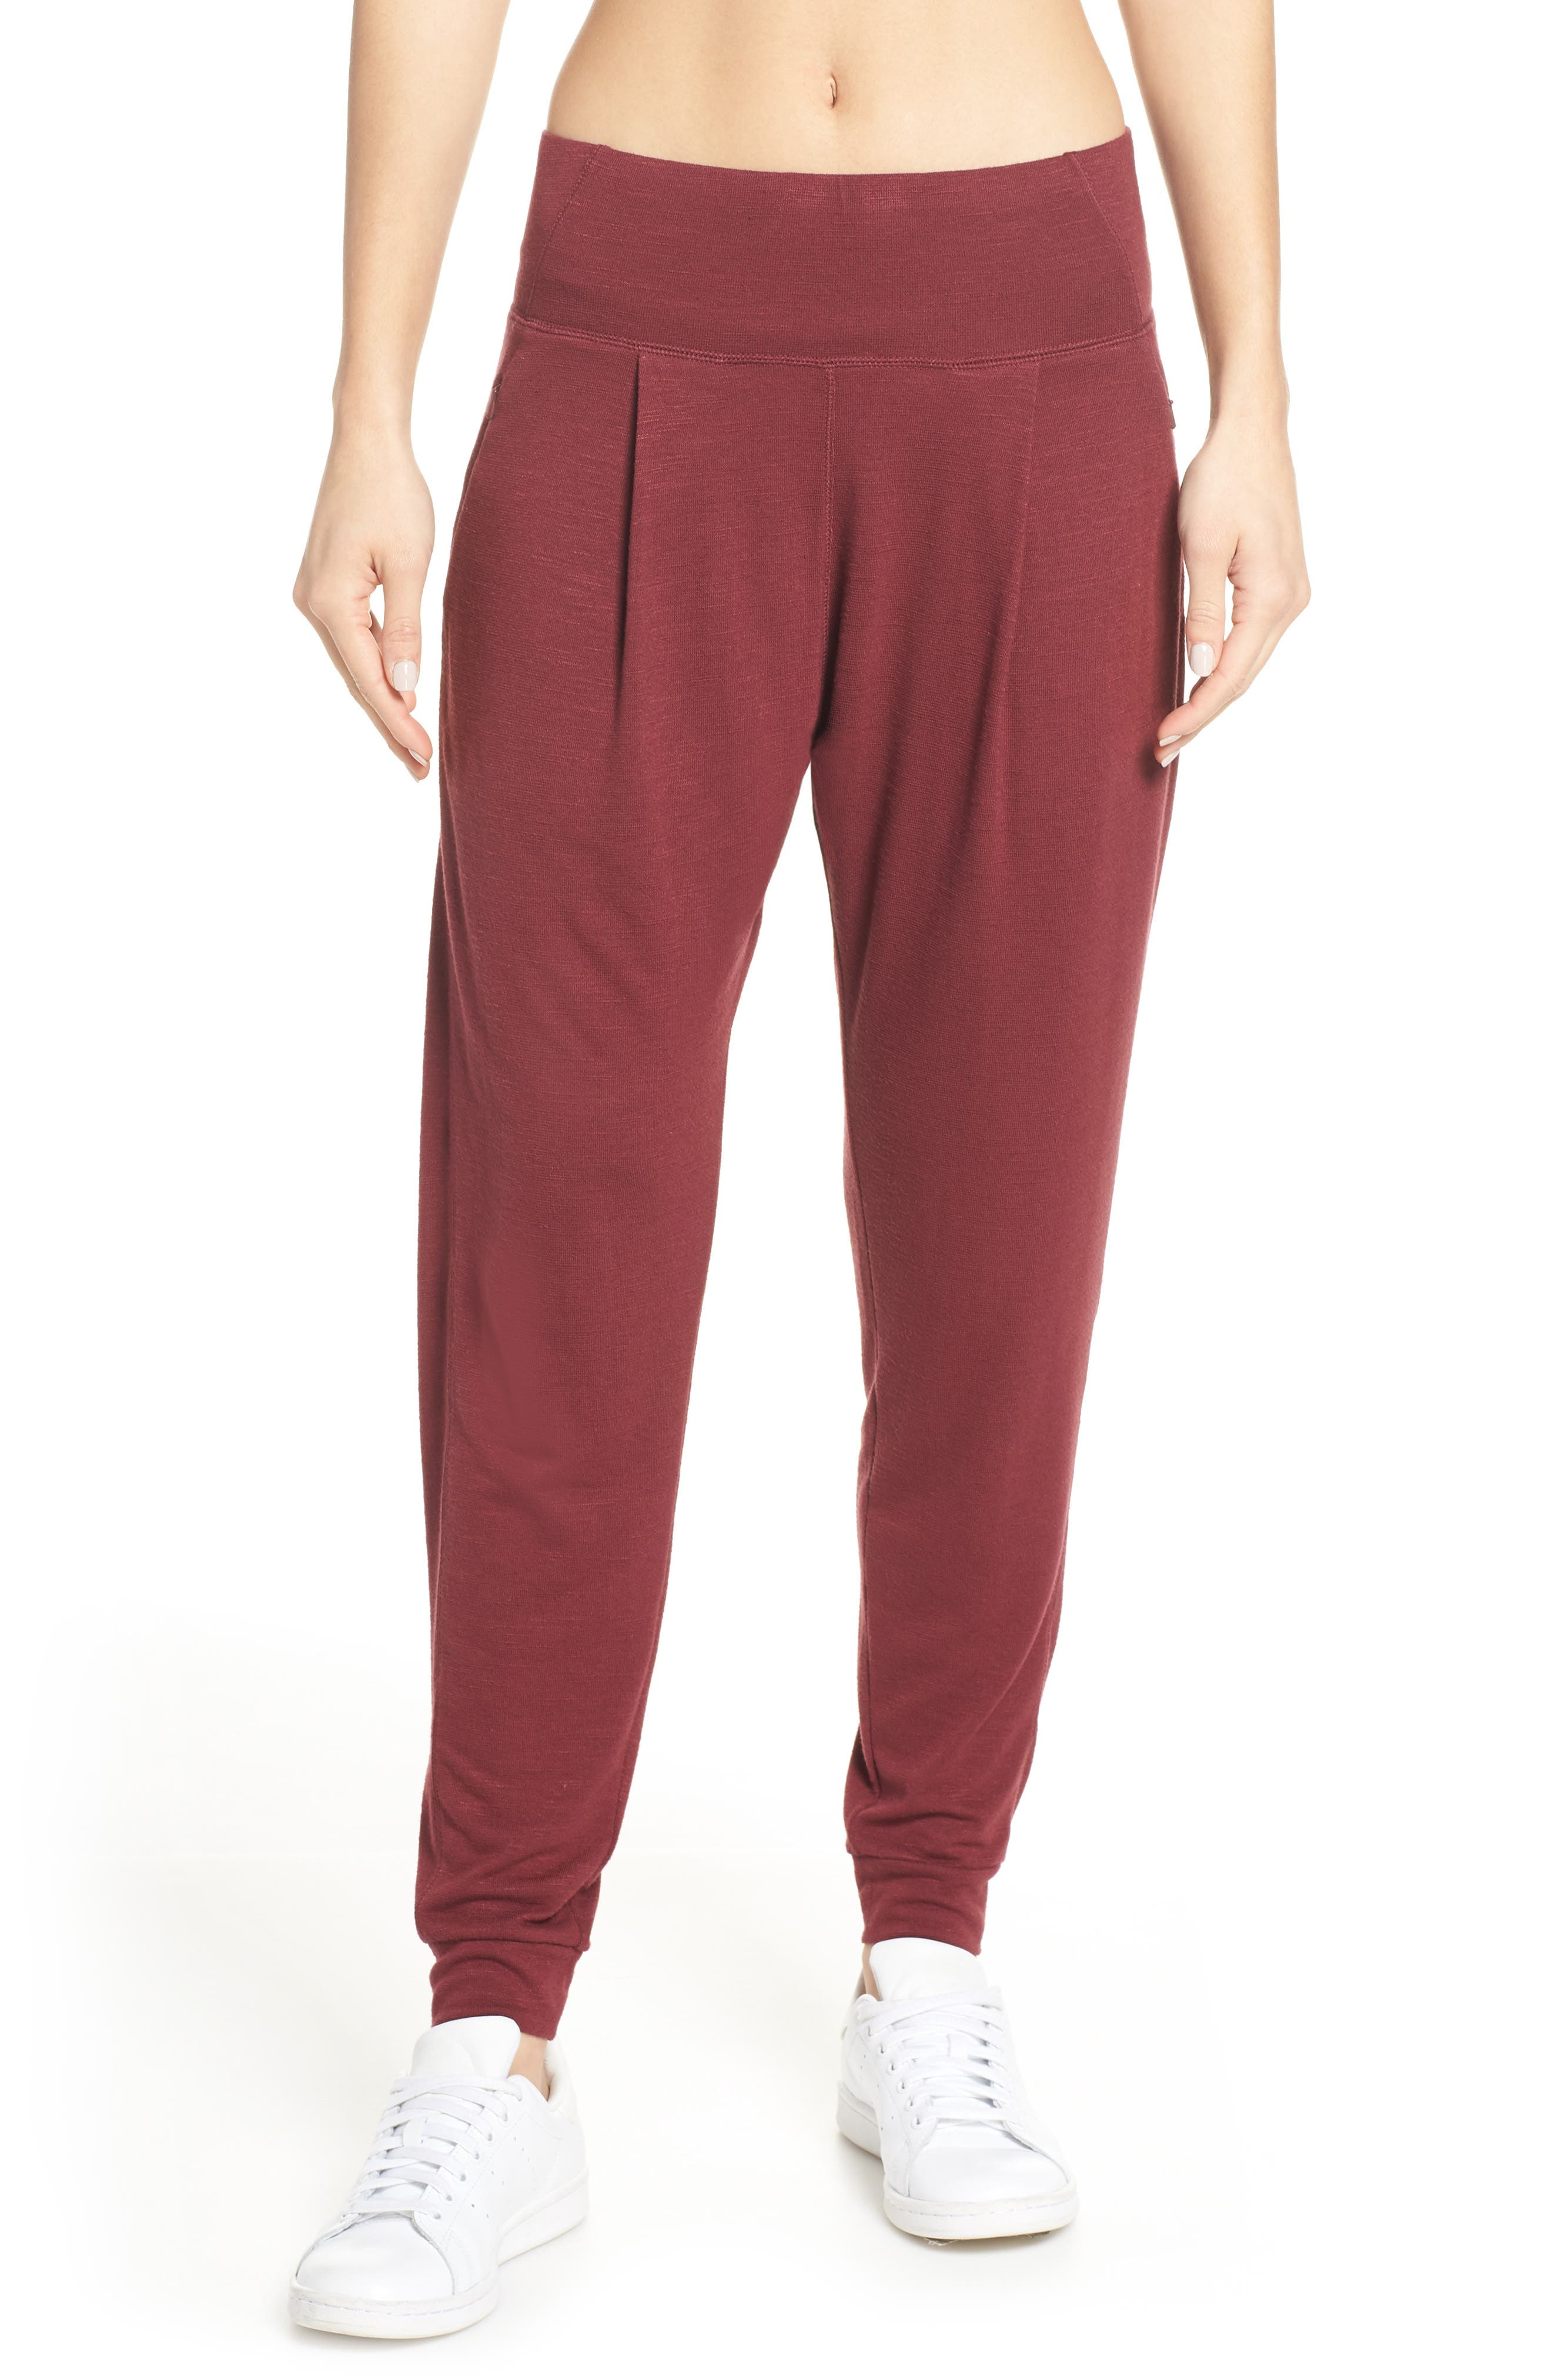 ZELLA Flow with It Ankle Pants, Main, color, RED TANNIN